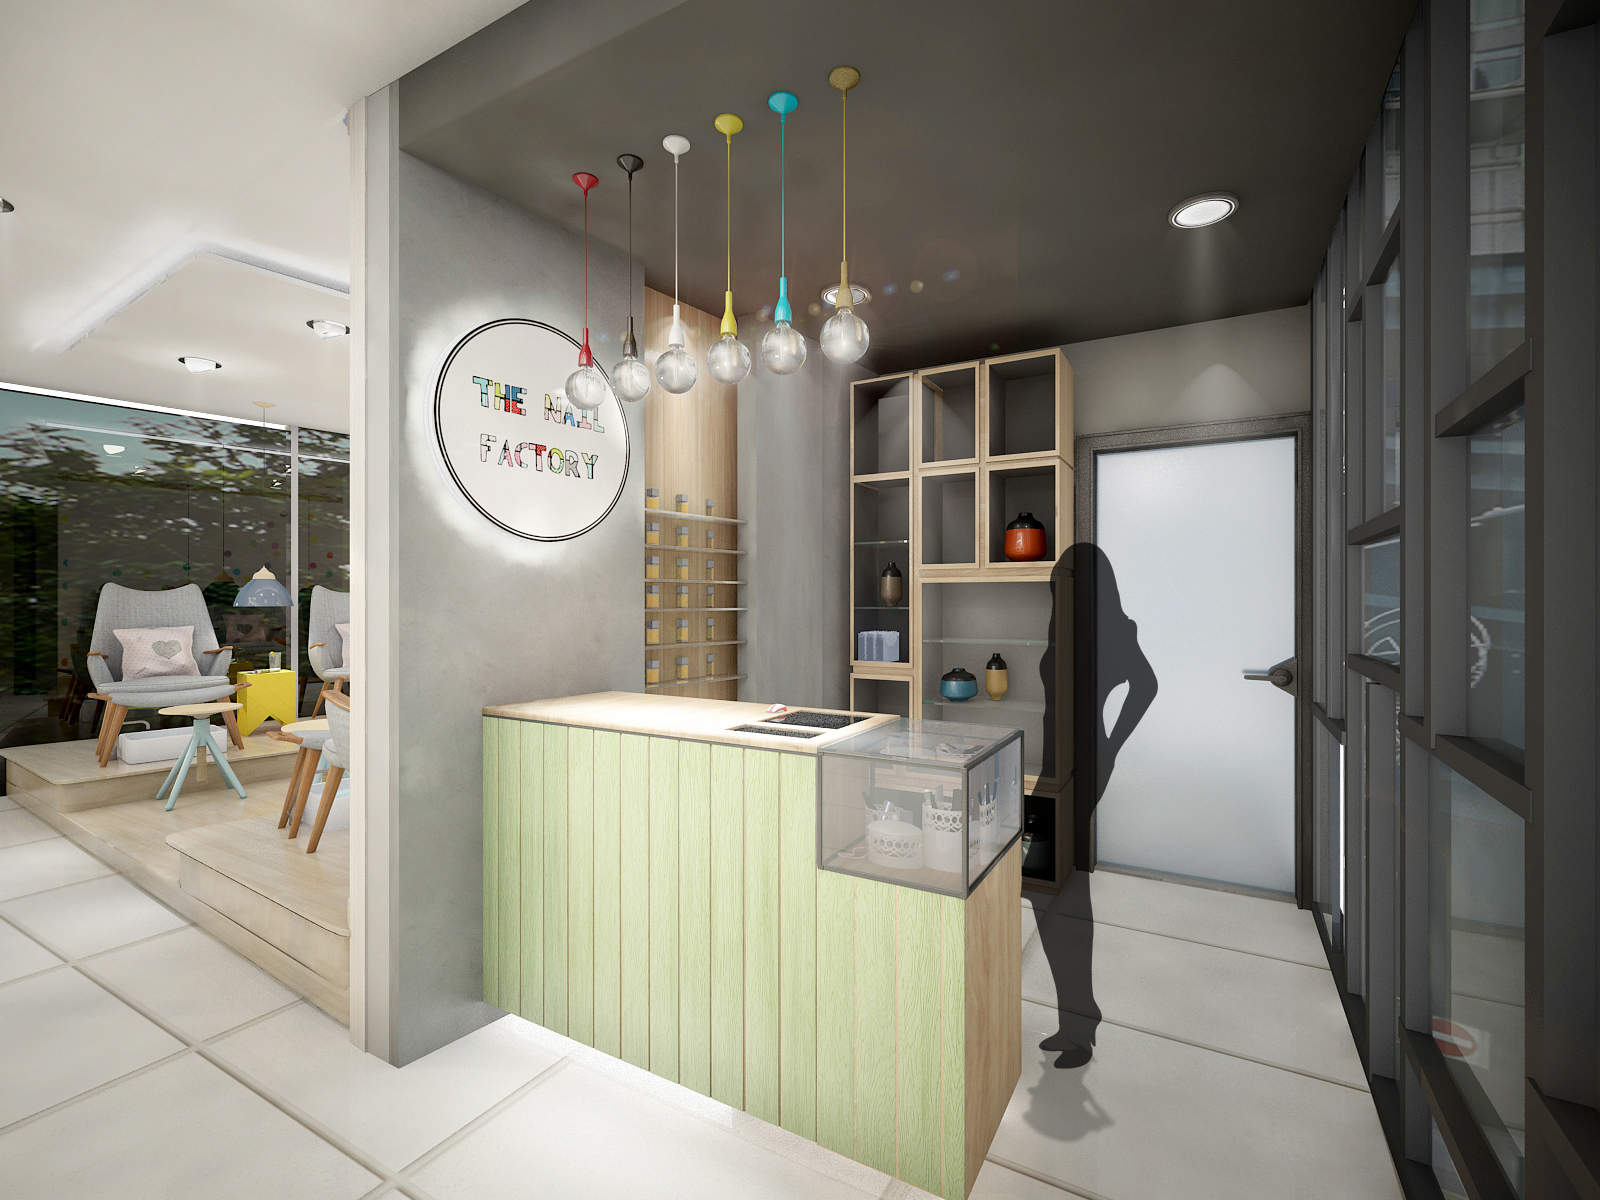 Ivy 39 s dairy last work for my diploma of interior design - Scale in interior design ...